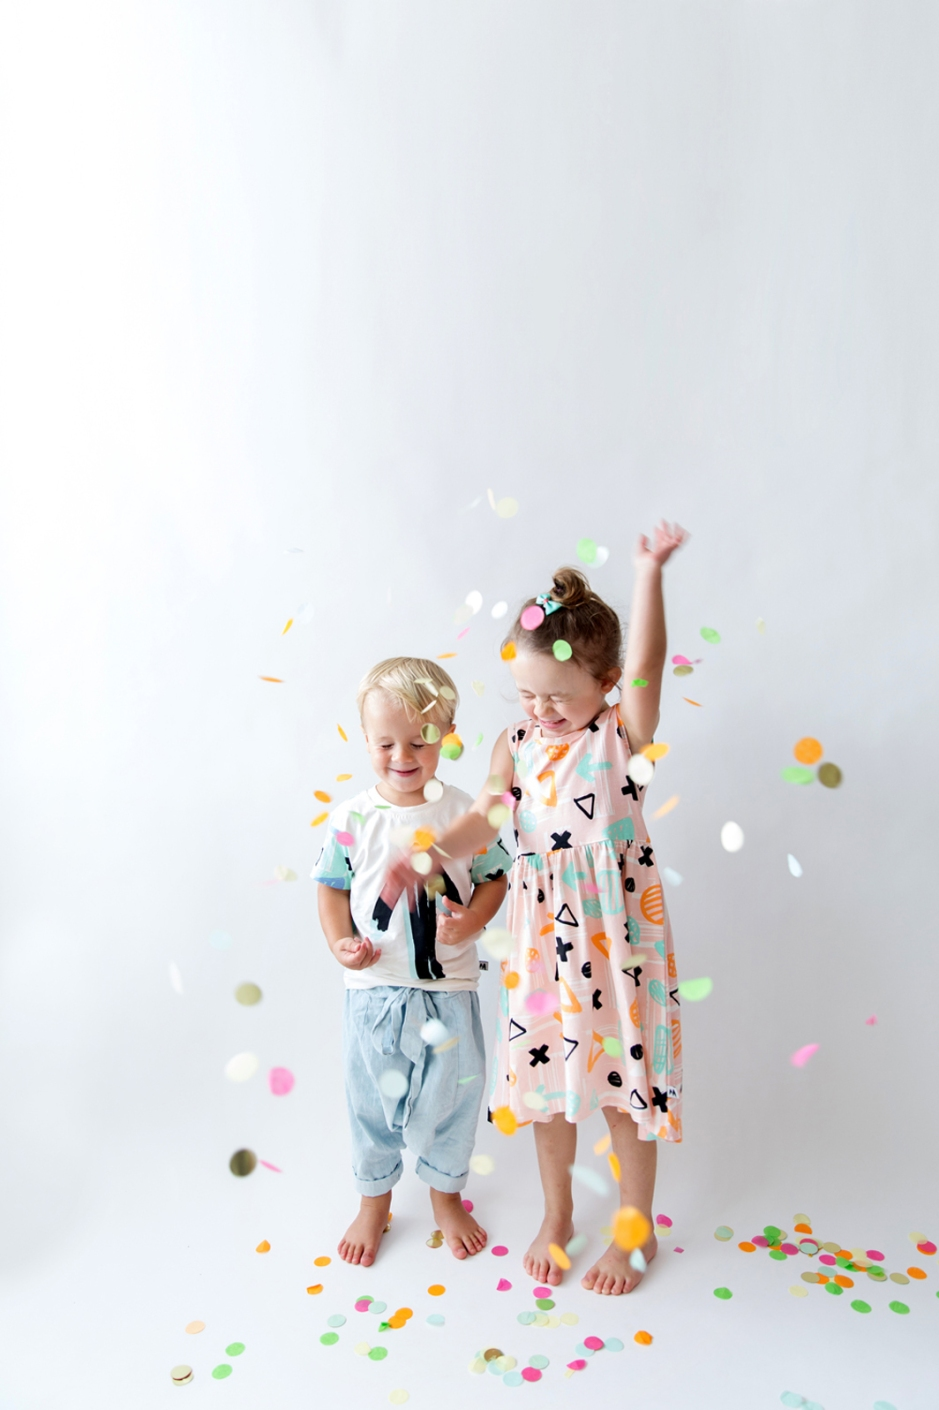 photography pop up (with confetti)